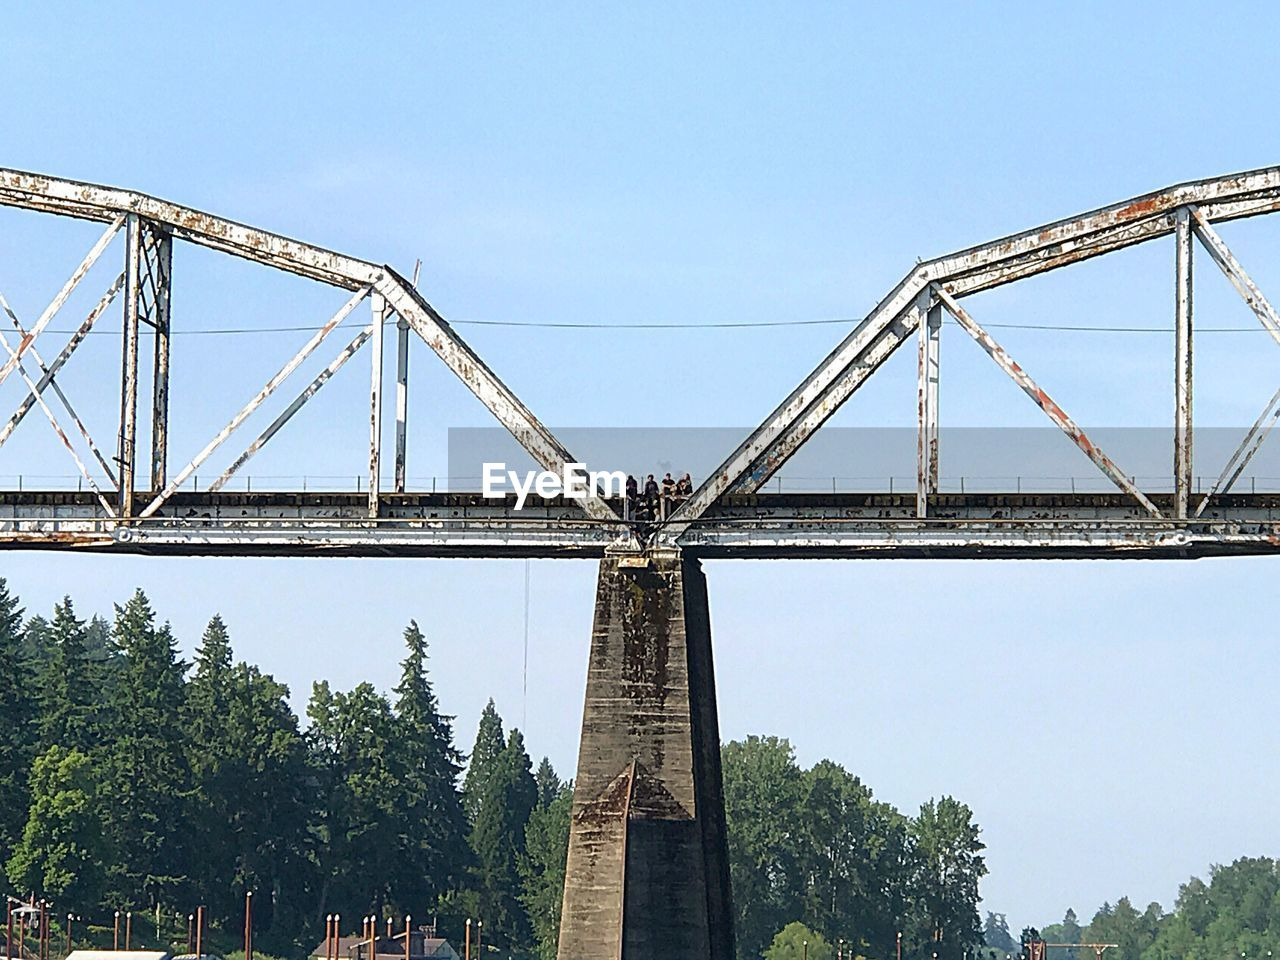 bridge - man made structure, connection, engineering, built structure, architecture, low angle view, transportation, outdoors, day, tree, clear sky, sky, suspension bridge, no people, city